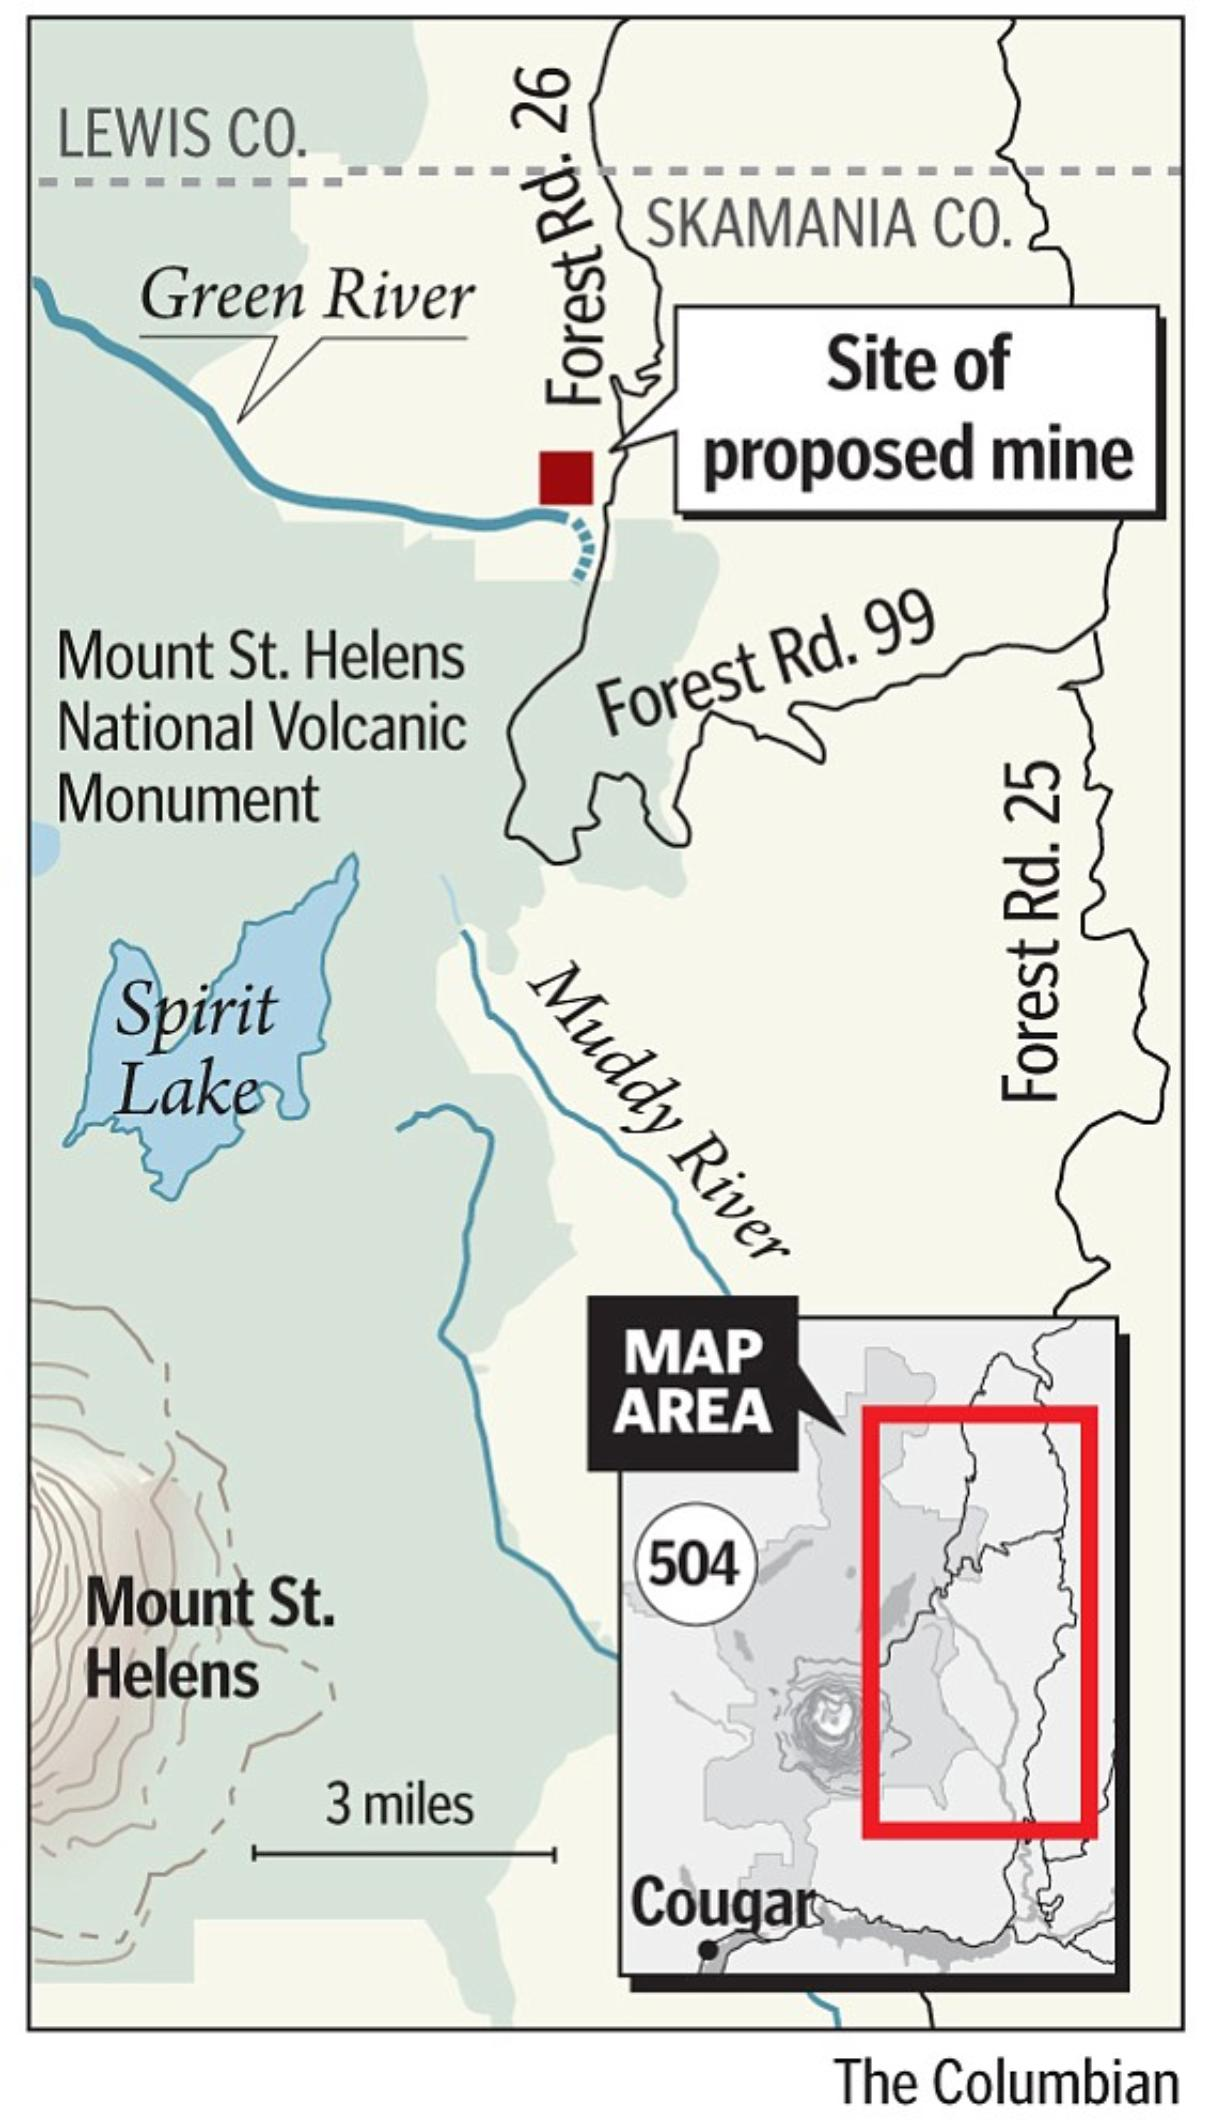 Proposed mine near Mount St. Helens.